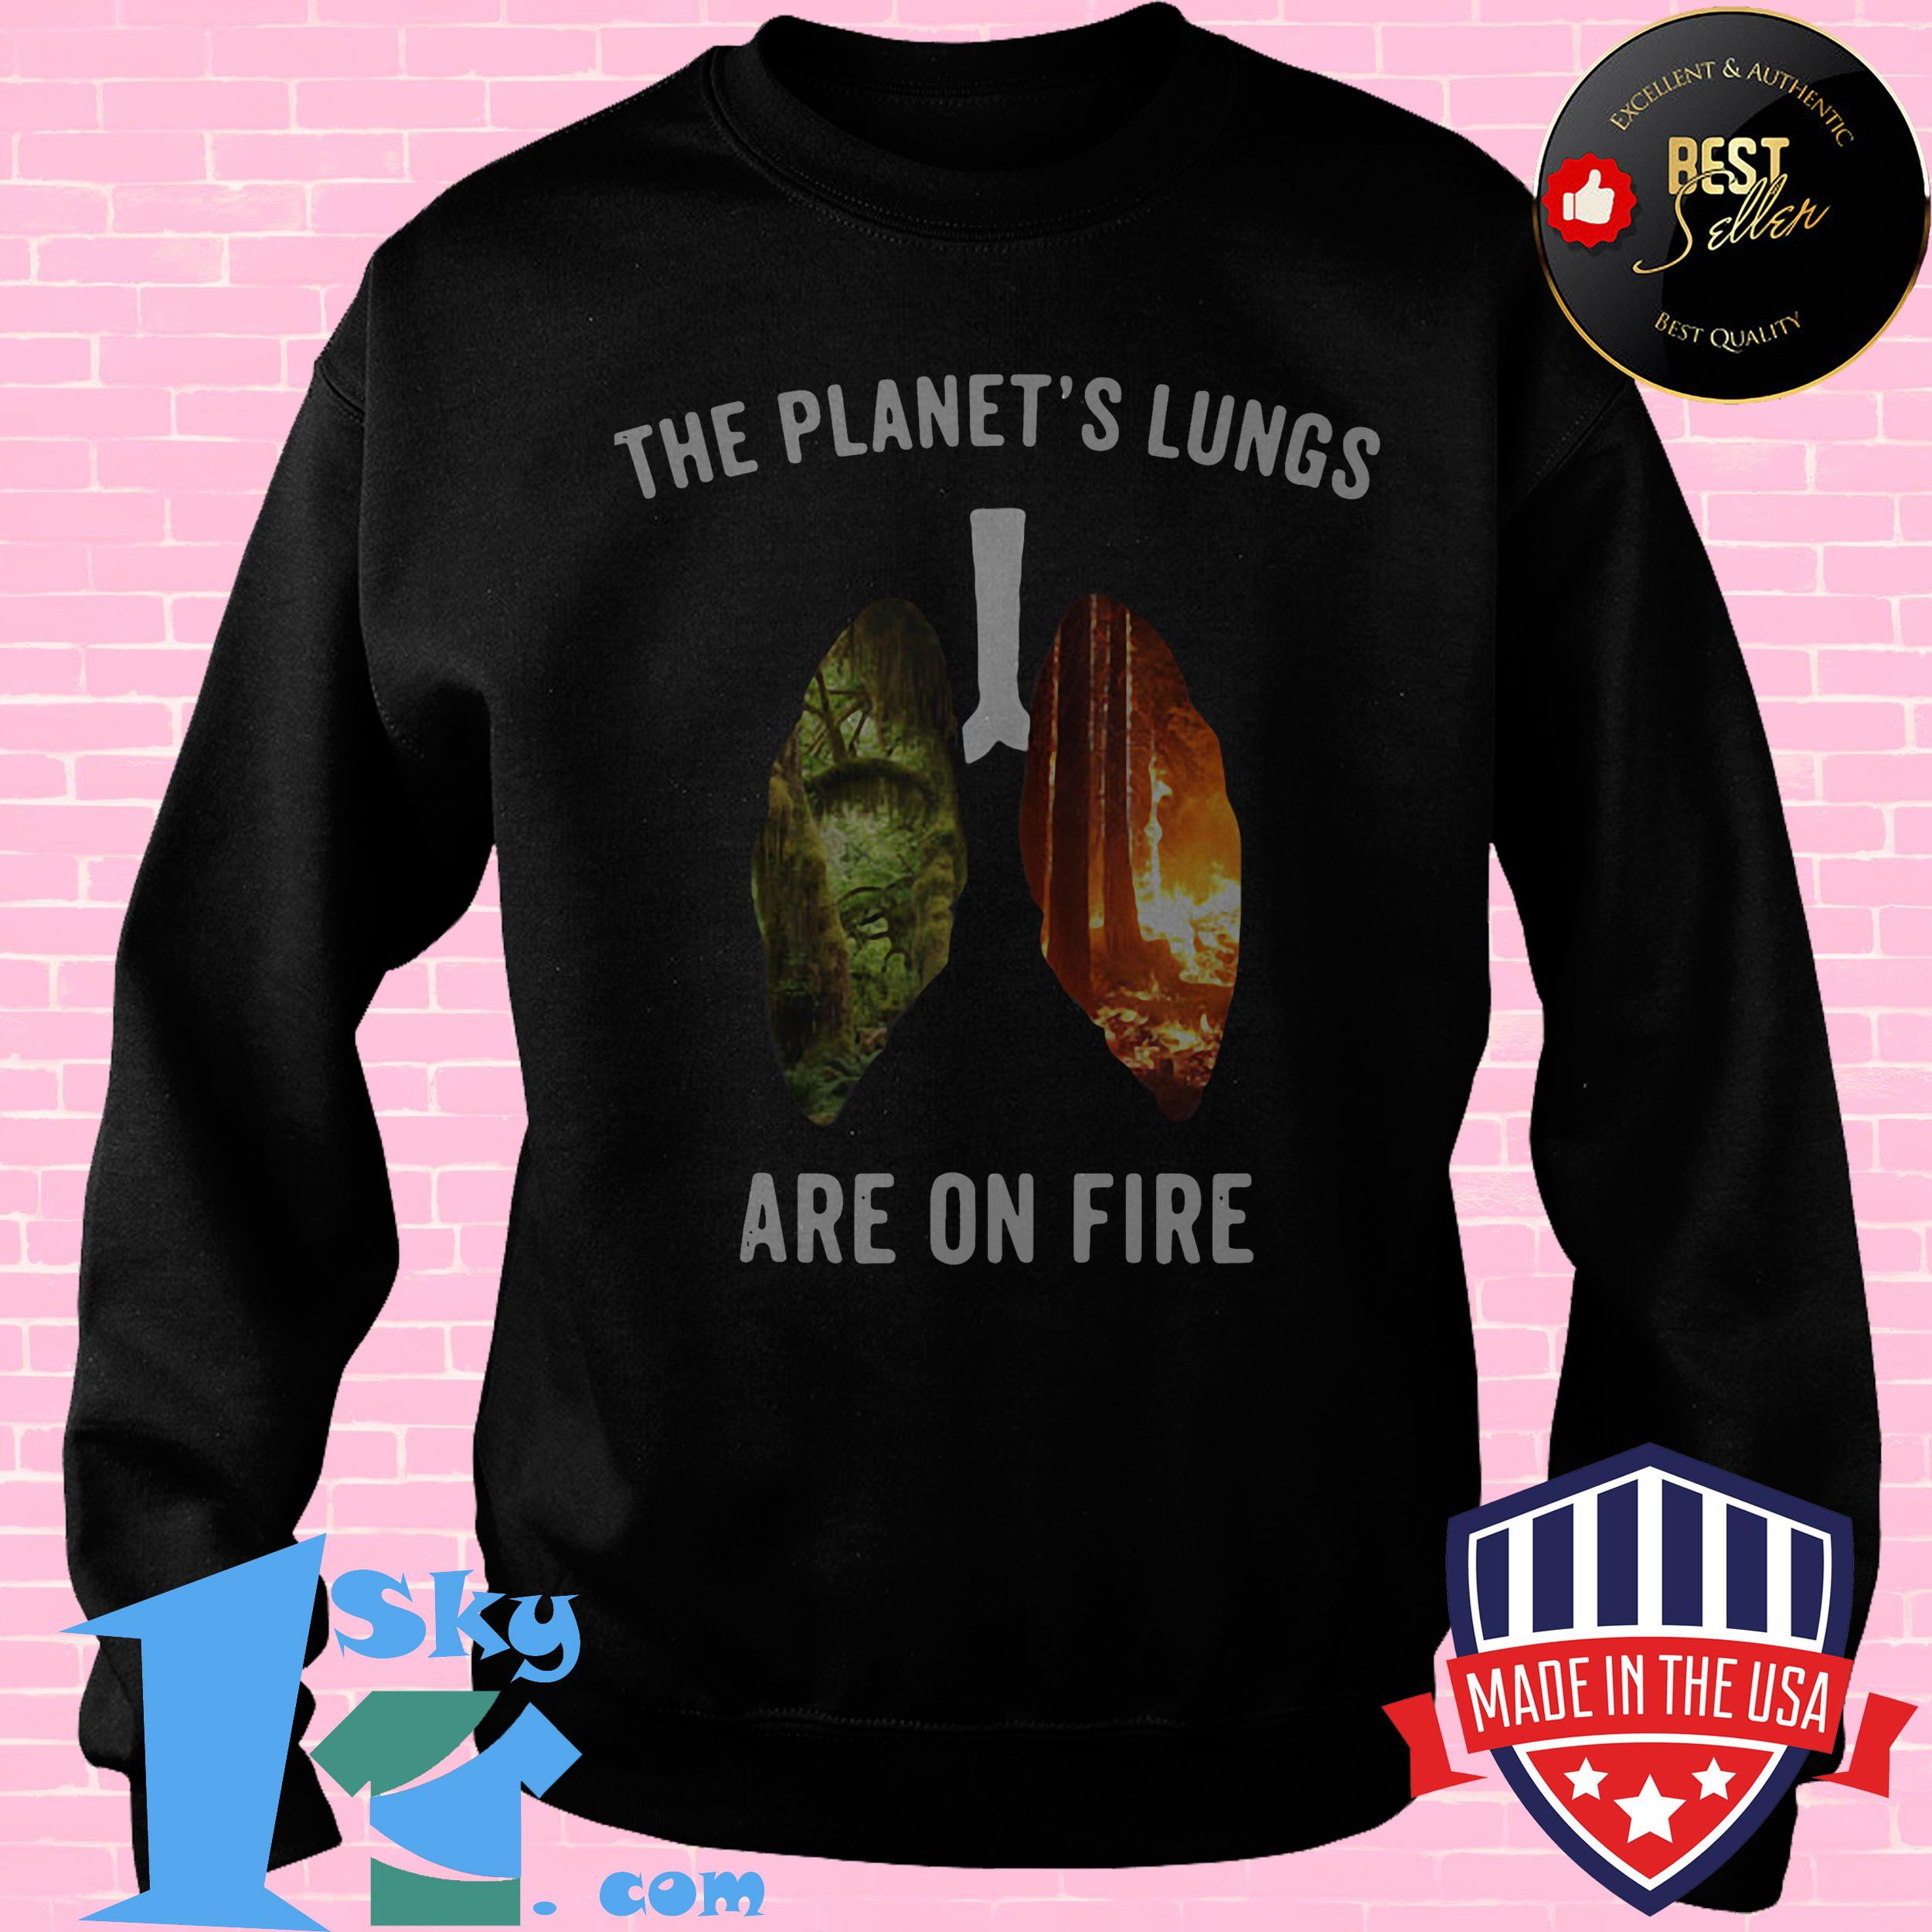 the planets lungs are on fire brazil rainforest burning payforamazon sweatshirt - The Planet's Lungs Are On Fire Brazil Rainforest Burning #payforamazon shirt